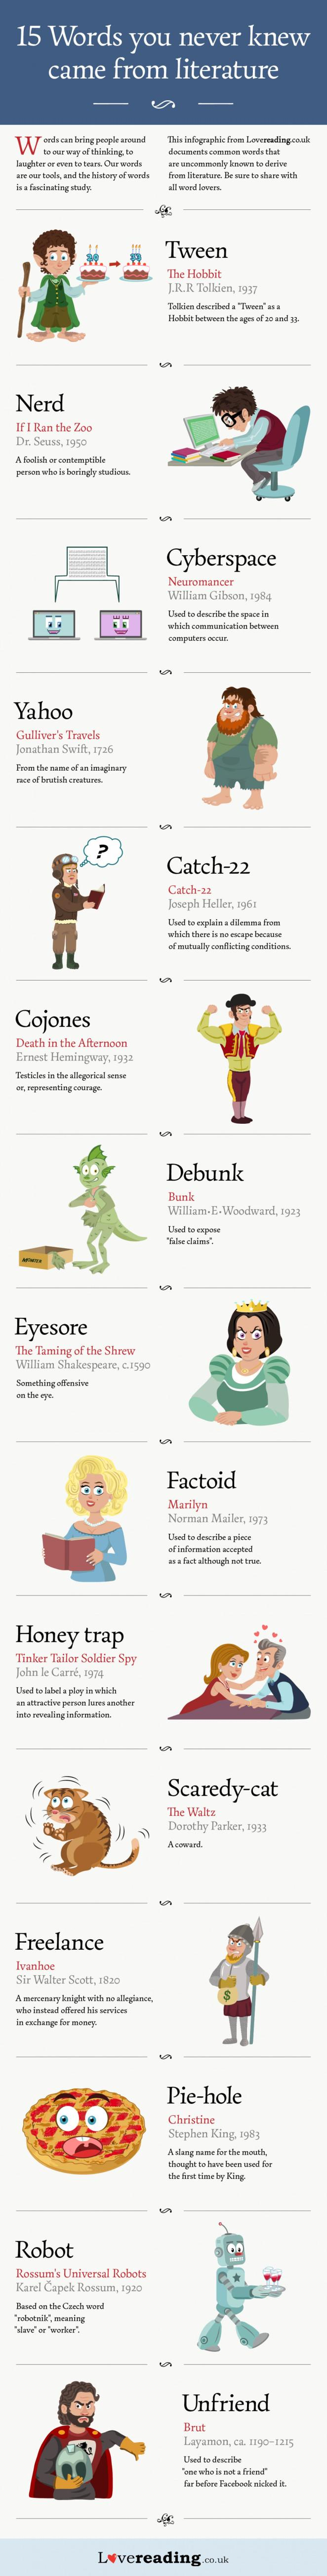 15 Words You Didn't Know Came From Classic Literature